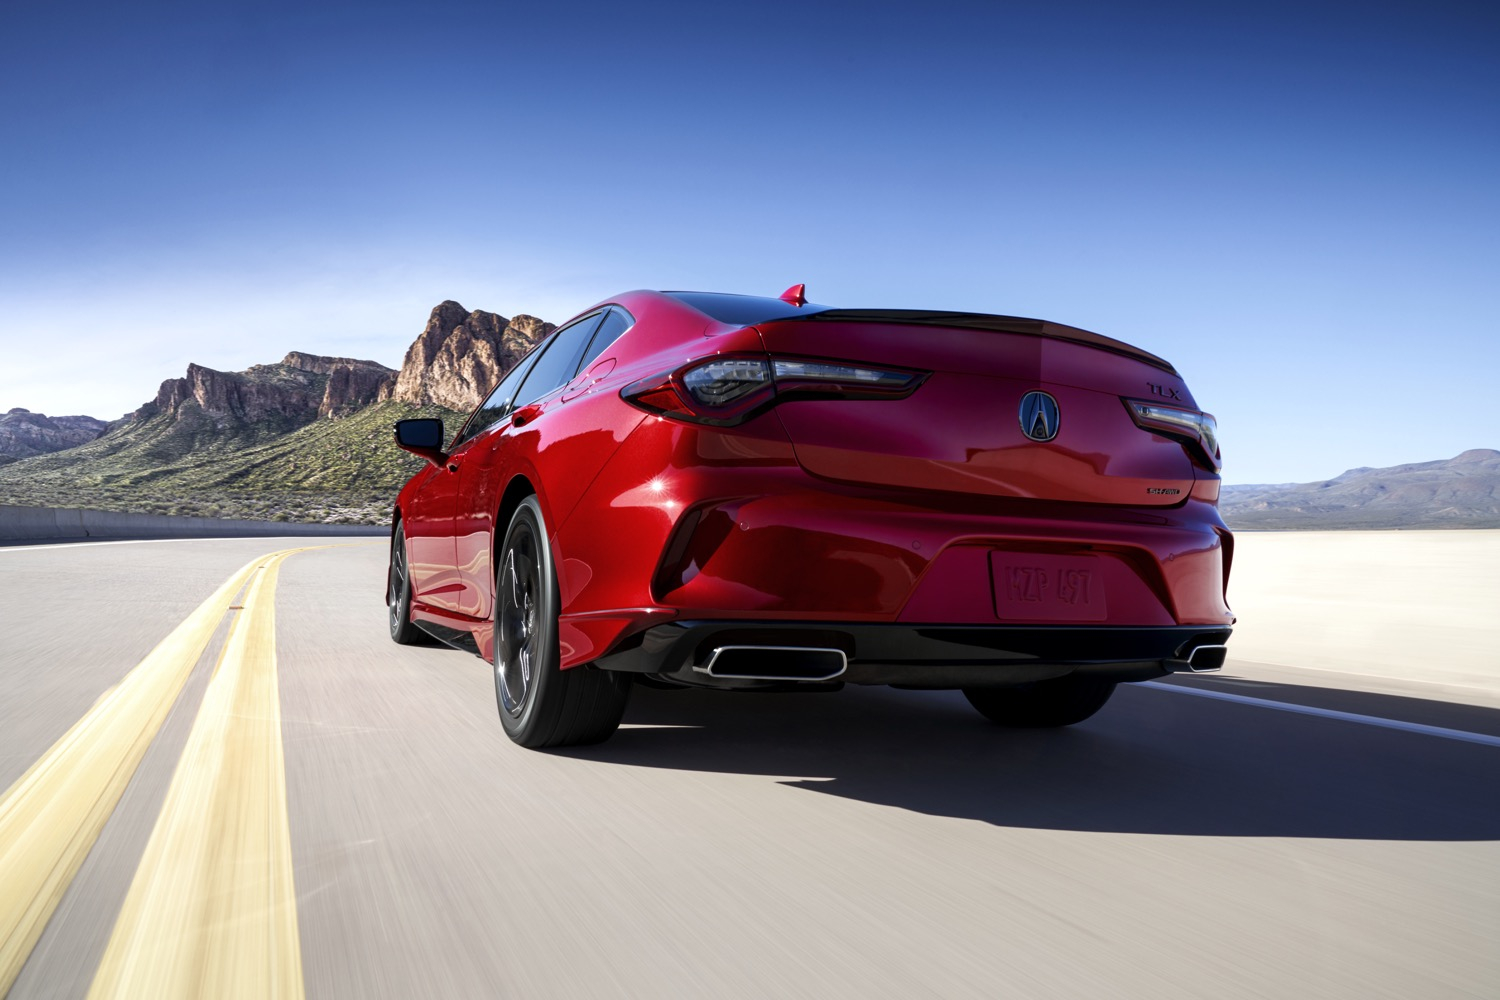 2021 Acura Tlx Debuts As Cadillac Ct5 Rival | Gm Authority New 2021 Buick Riviera Value, Turbocharged, Exhaust